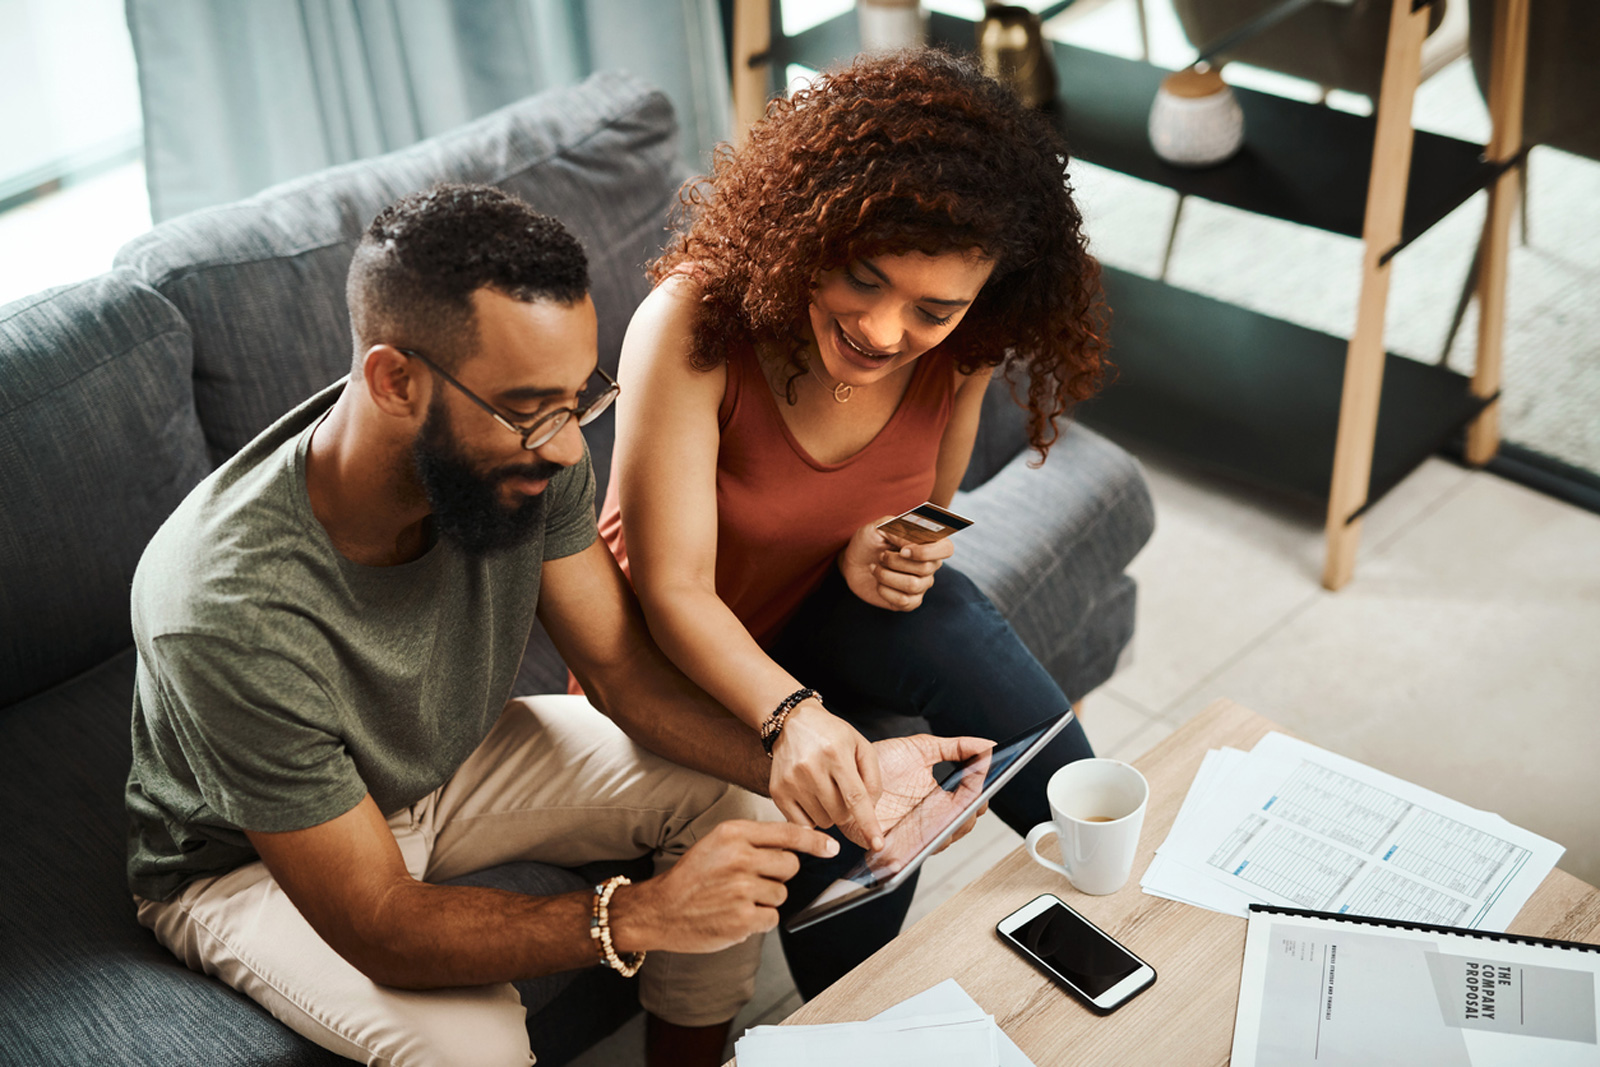 couple sitting on couch looking at tablet and holding credit card